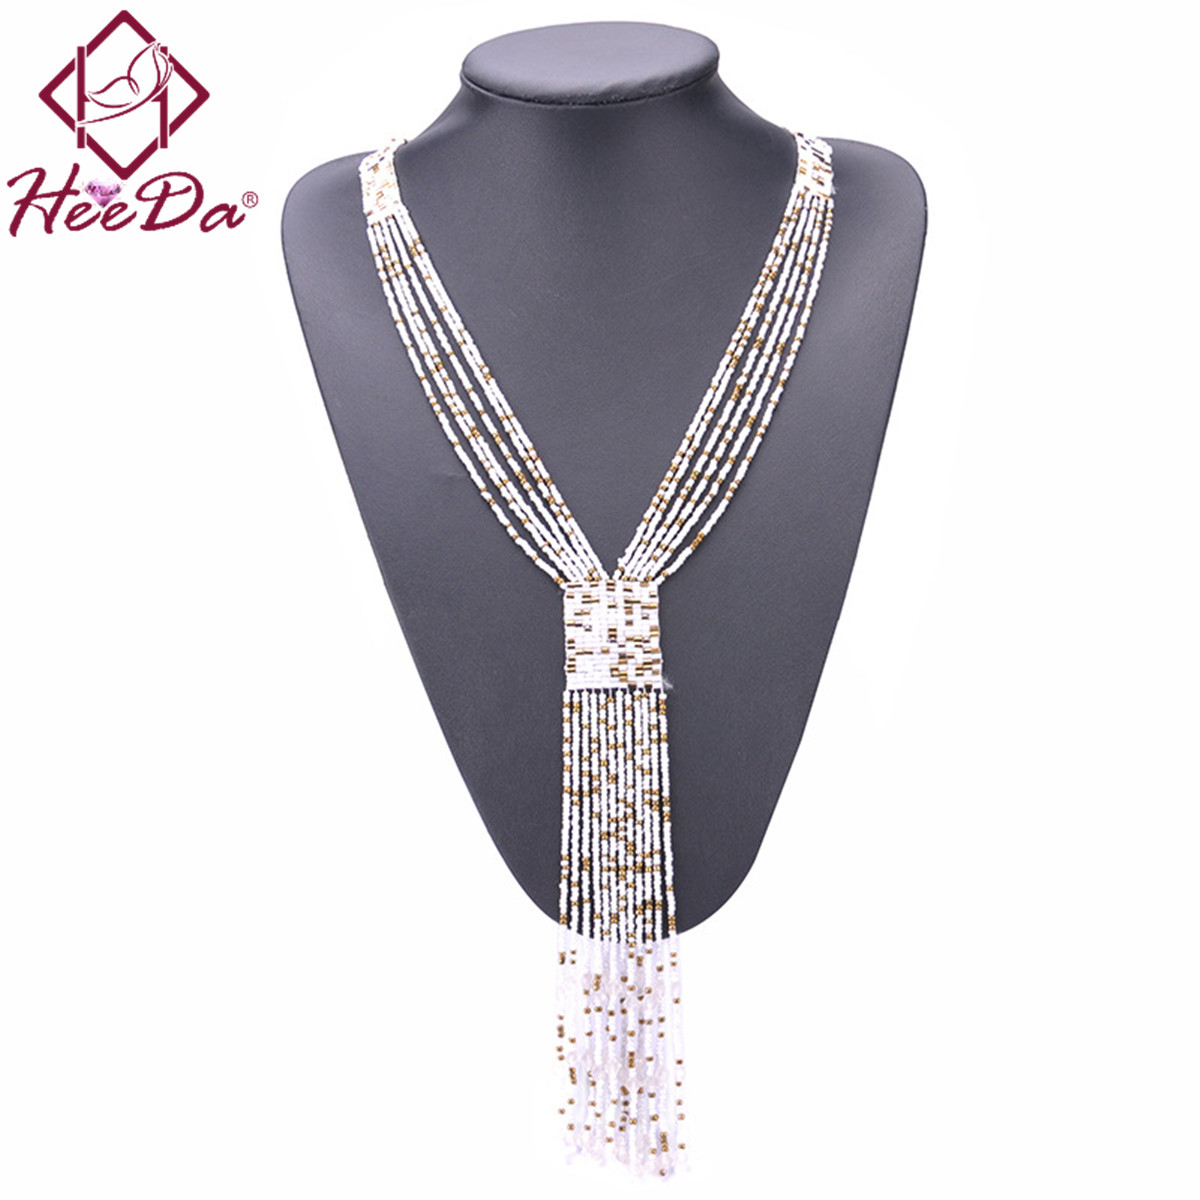 Moda Graceful Joker Femei Colier Boho Long Tassel Kolye Red Seedbead Hand-țesute Gât Decoration 2018 New Mothers Day cadou